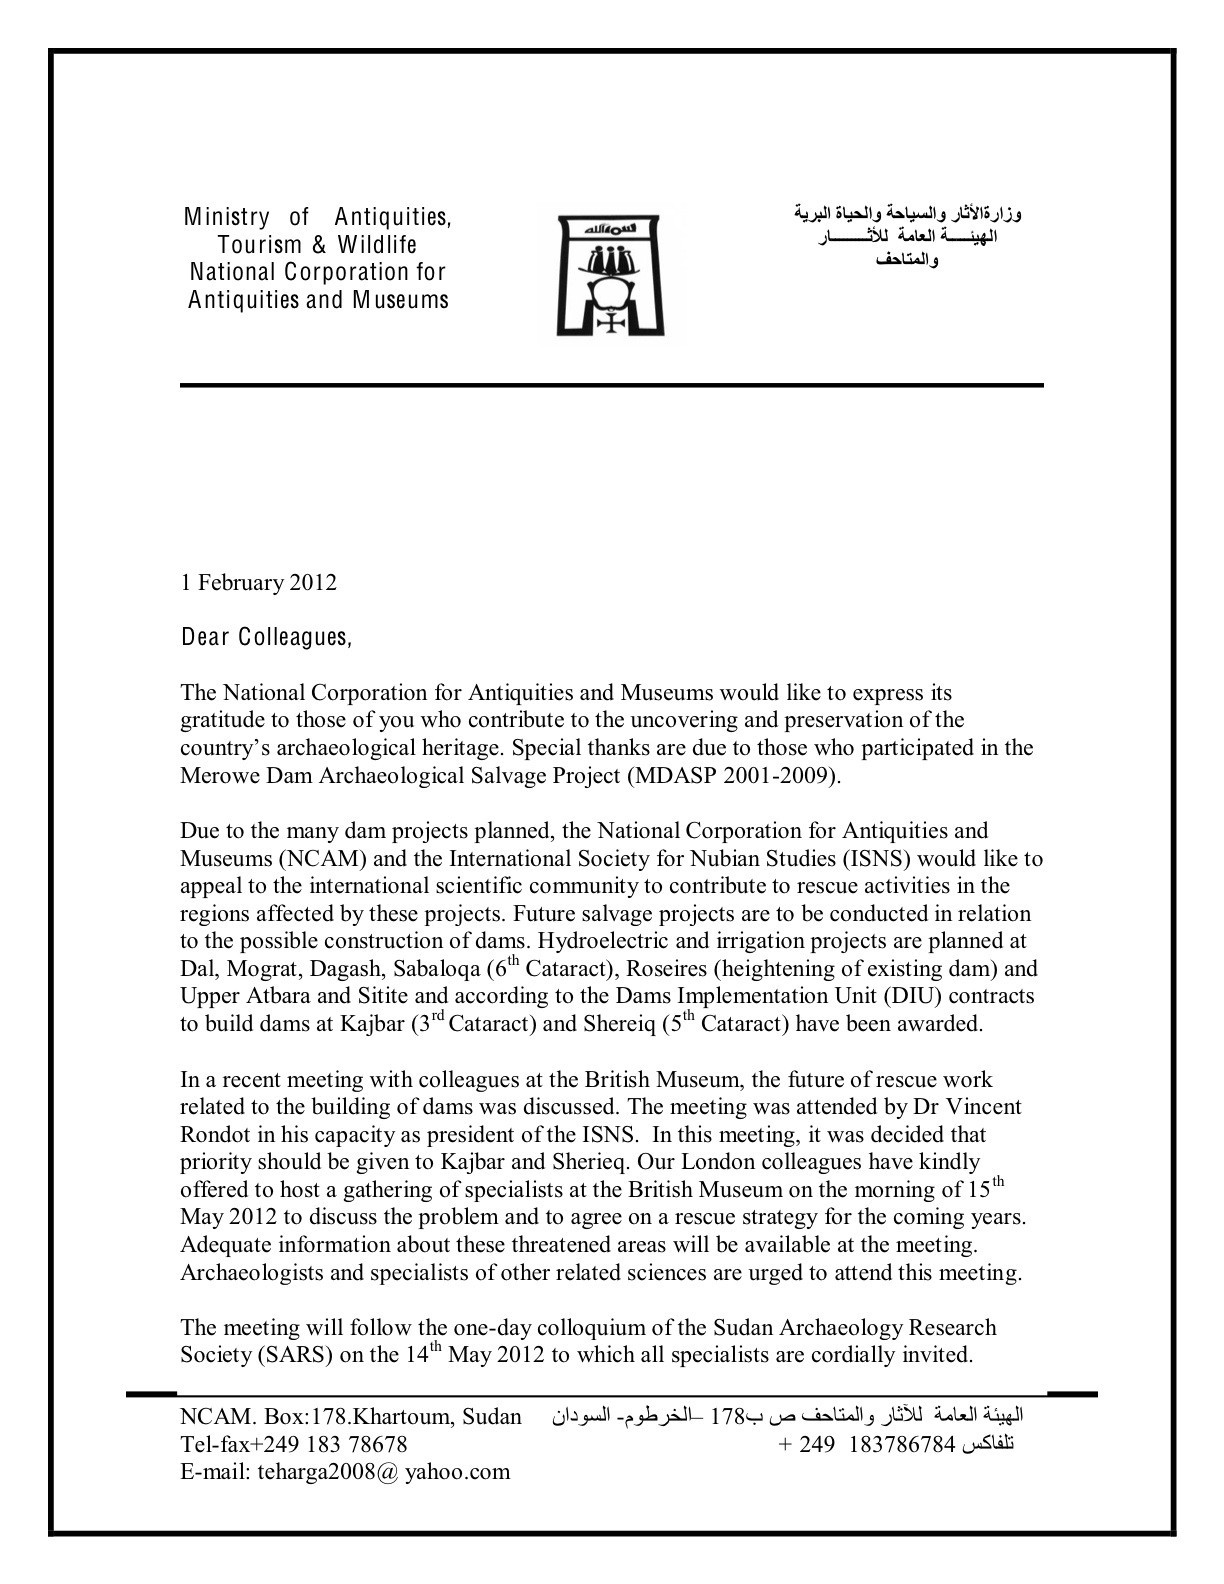 letter template letter example format  6+ example of appeal letter for college | penn working papers - letter template letter example format